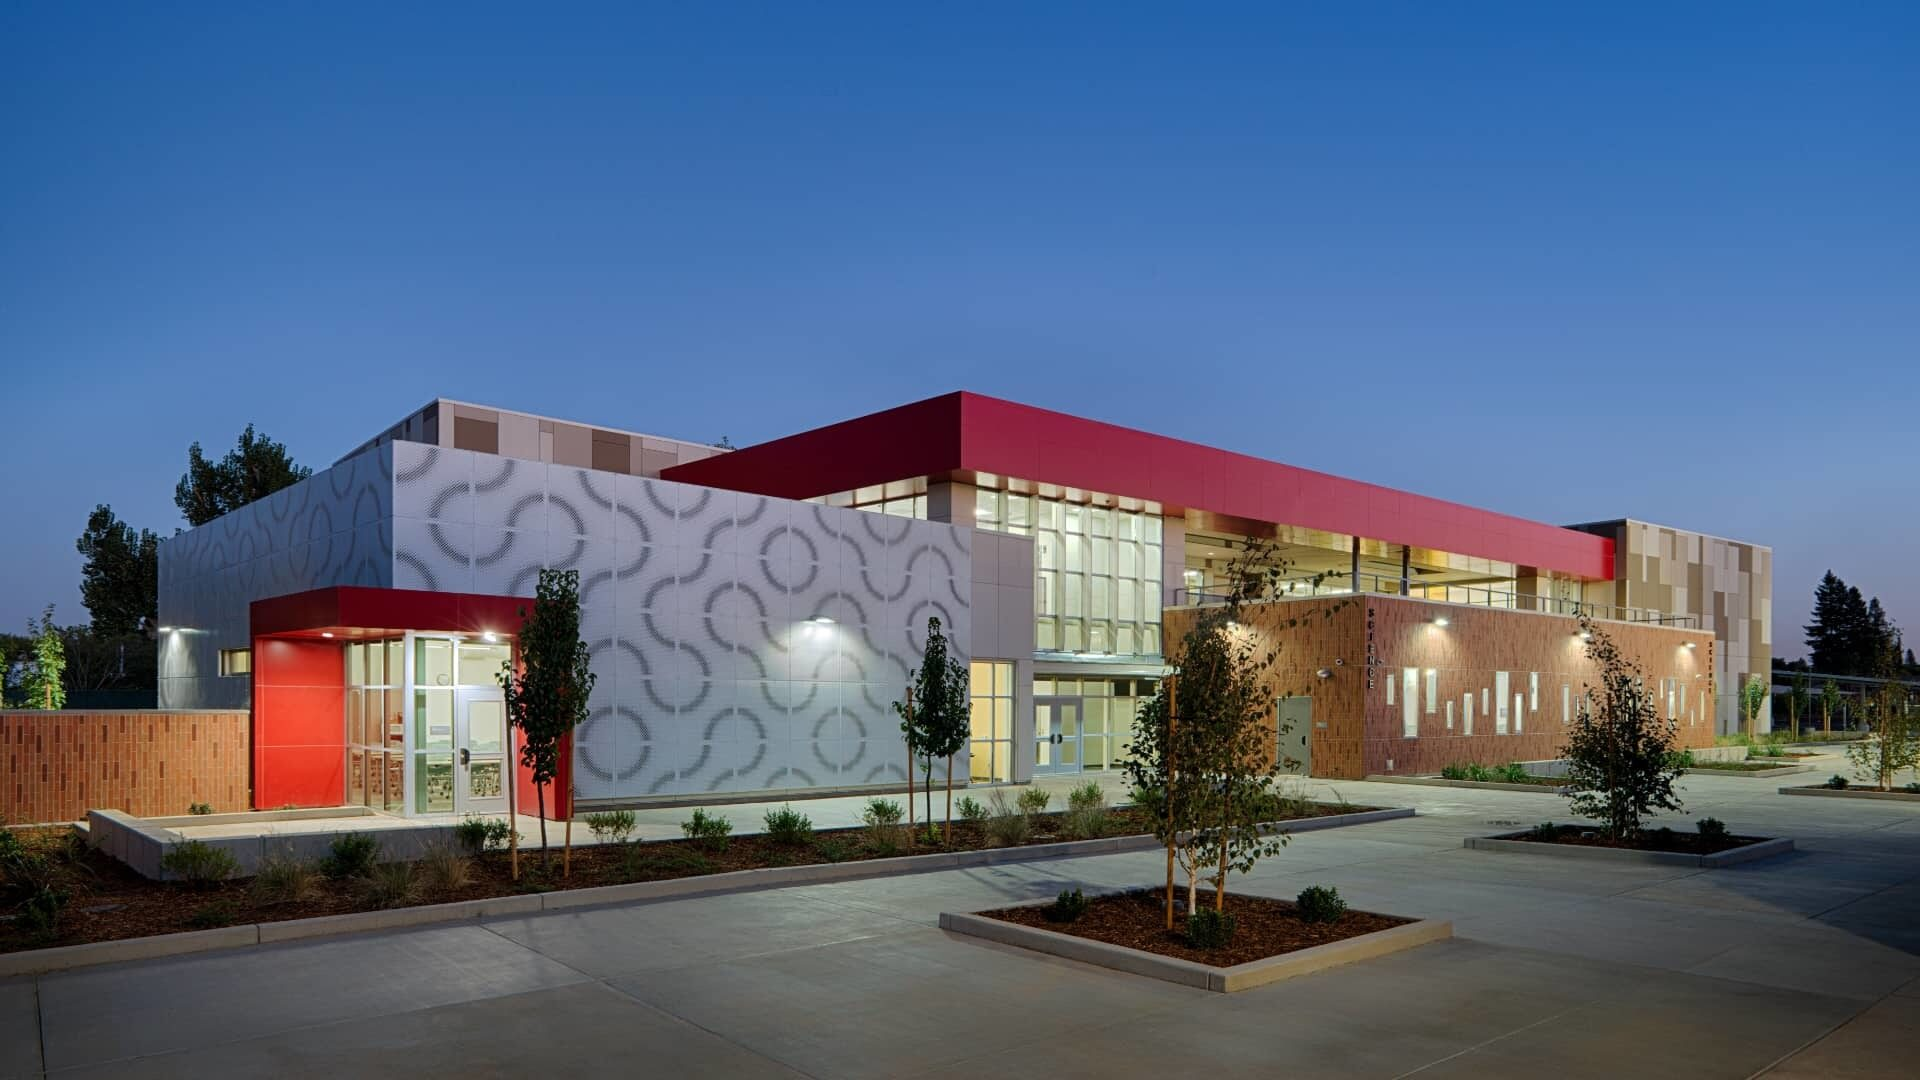 Mira Loma Science 4